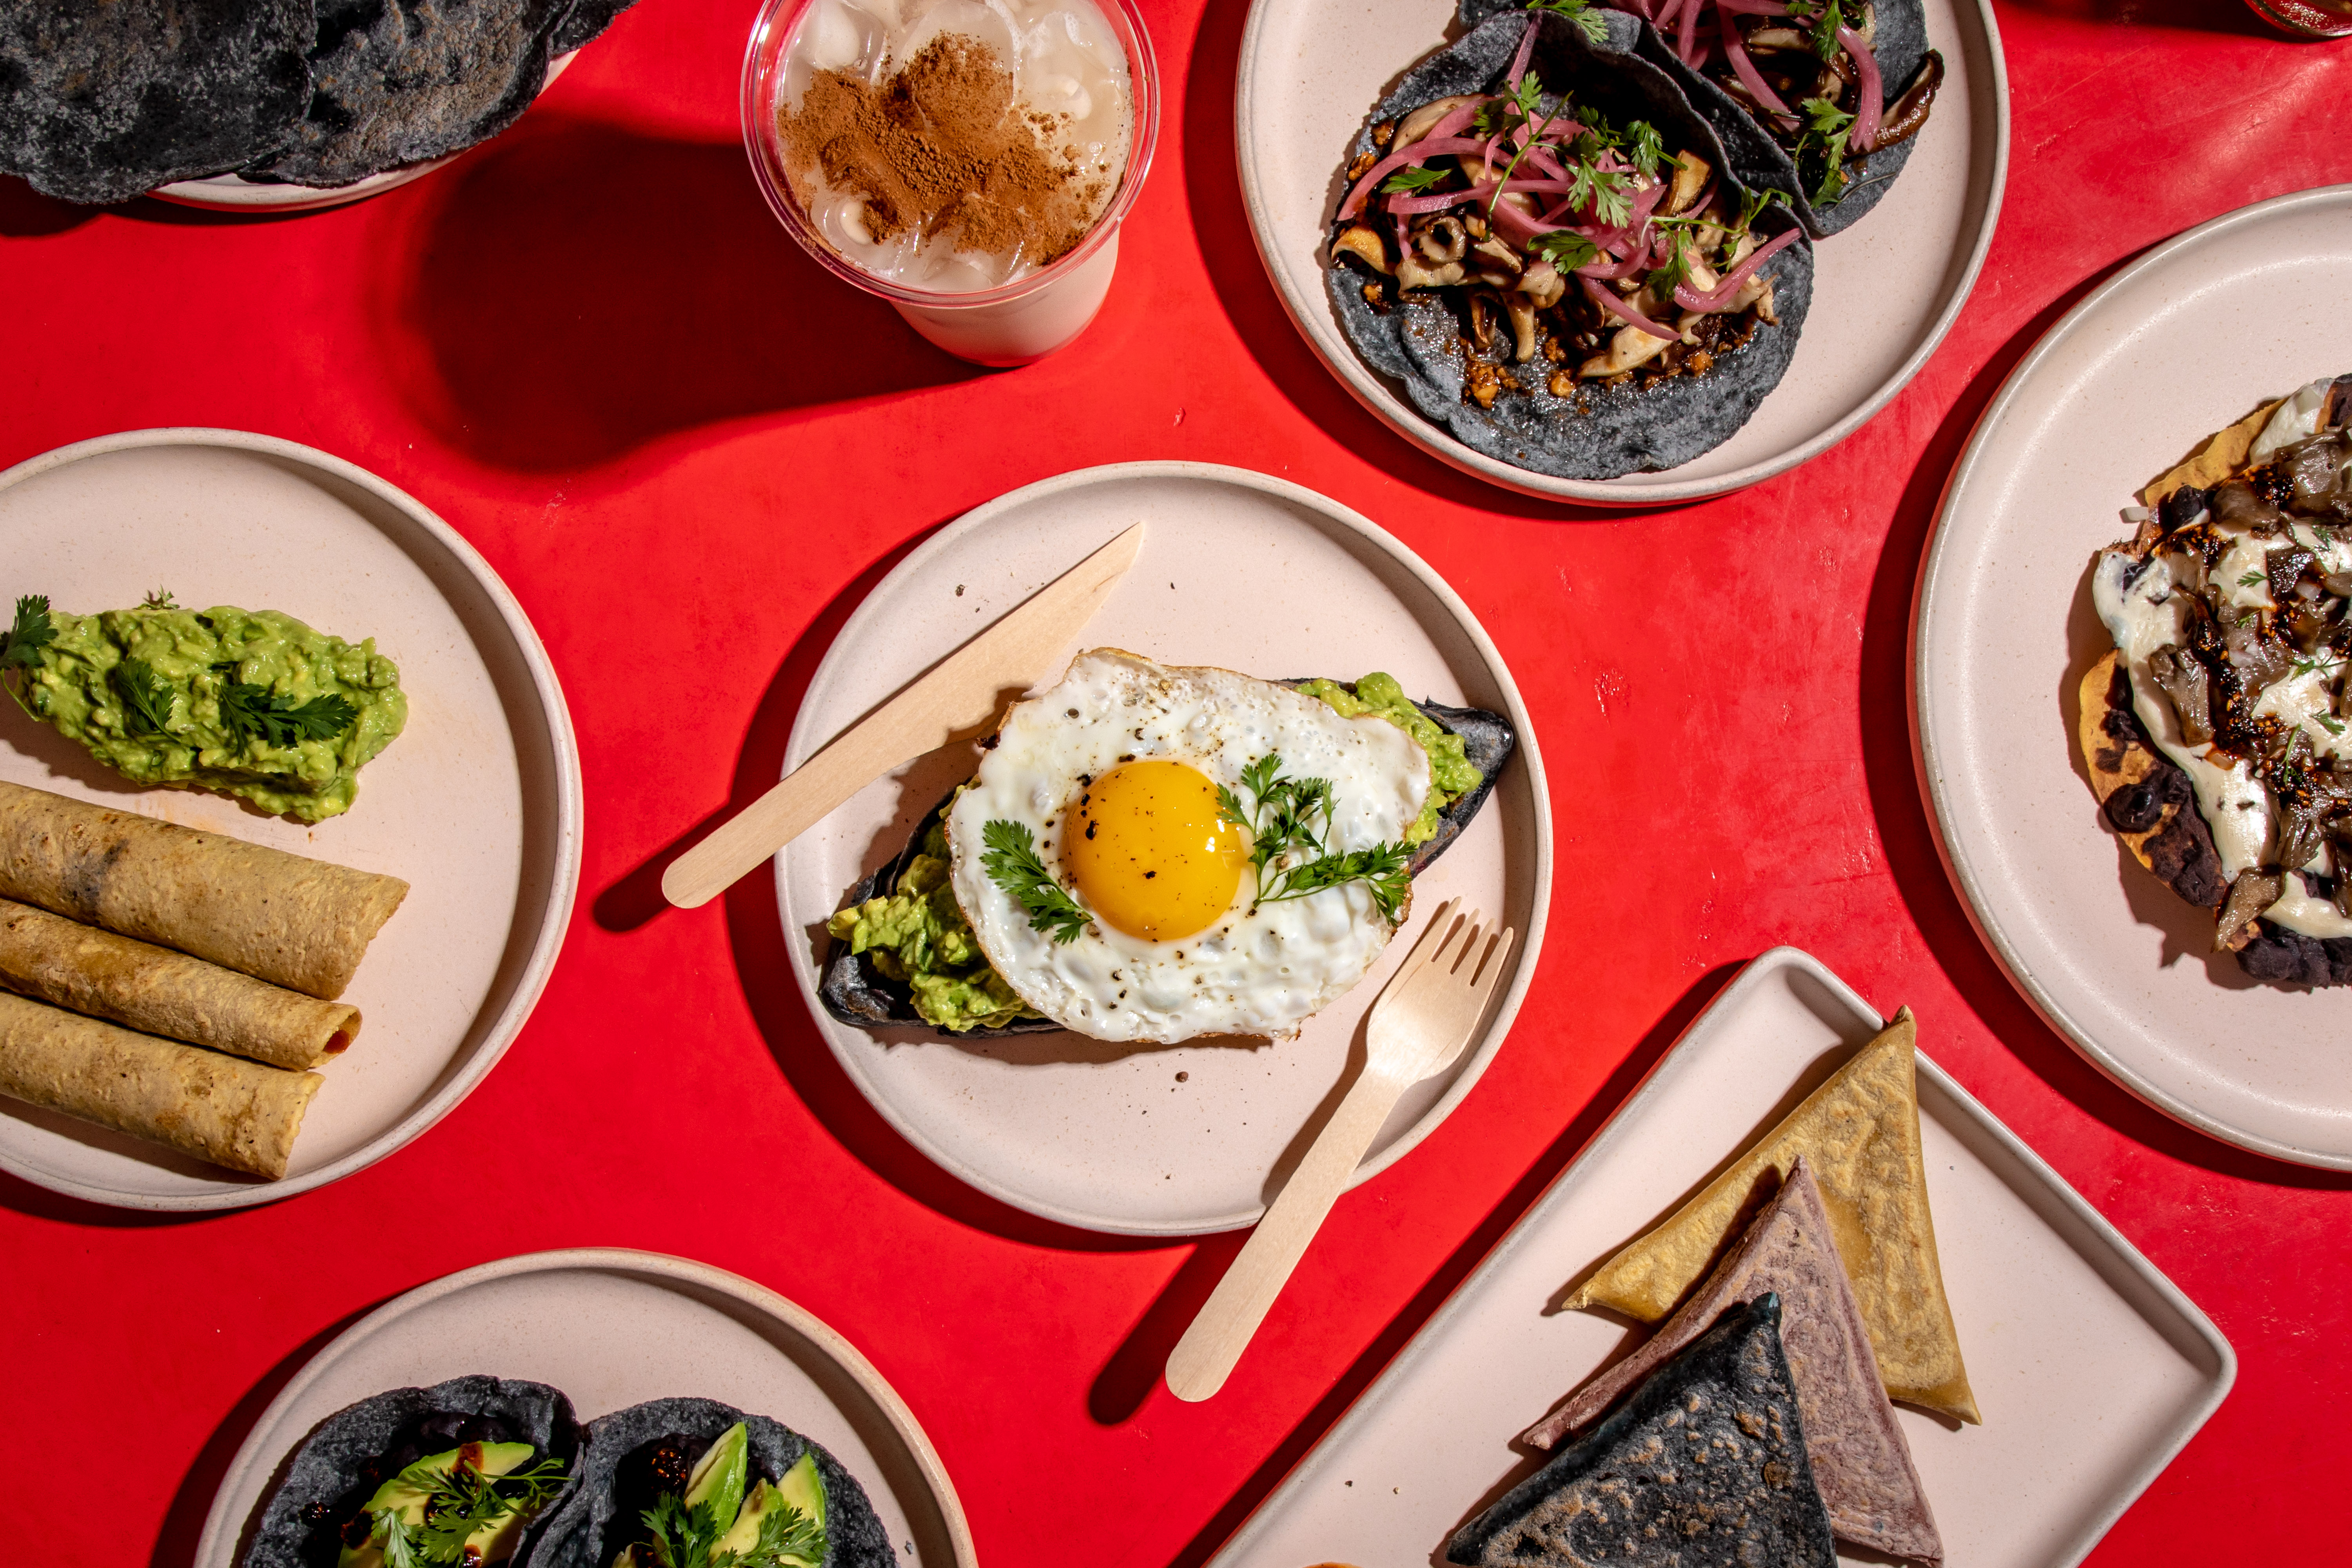 A sunny-side up fried egg sits over a memela with avocado in an overhead shot; the memela is surrounded by assorted dishes including tacos on blue corn tortillas and a cup of horchata